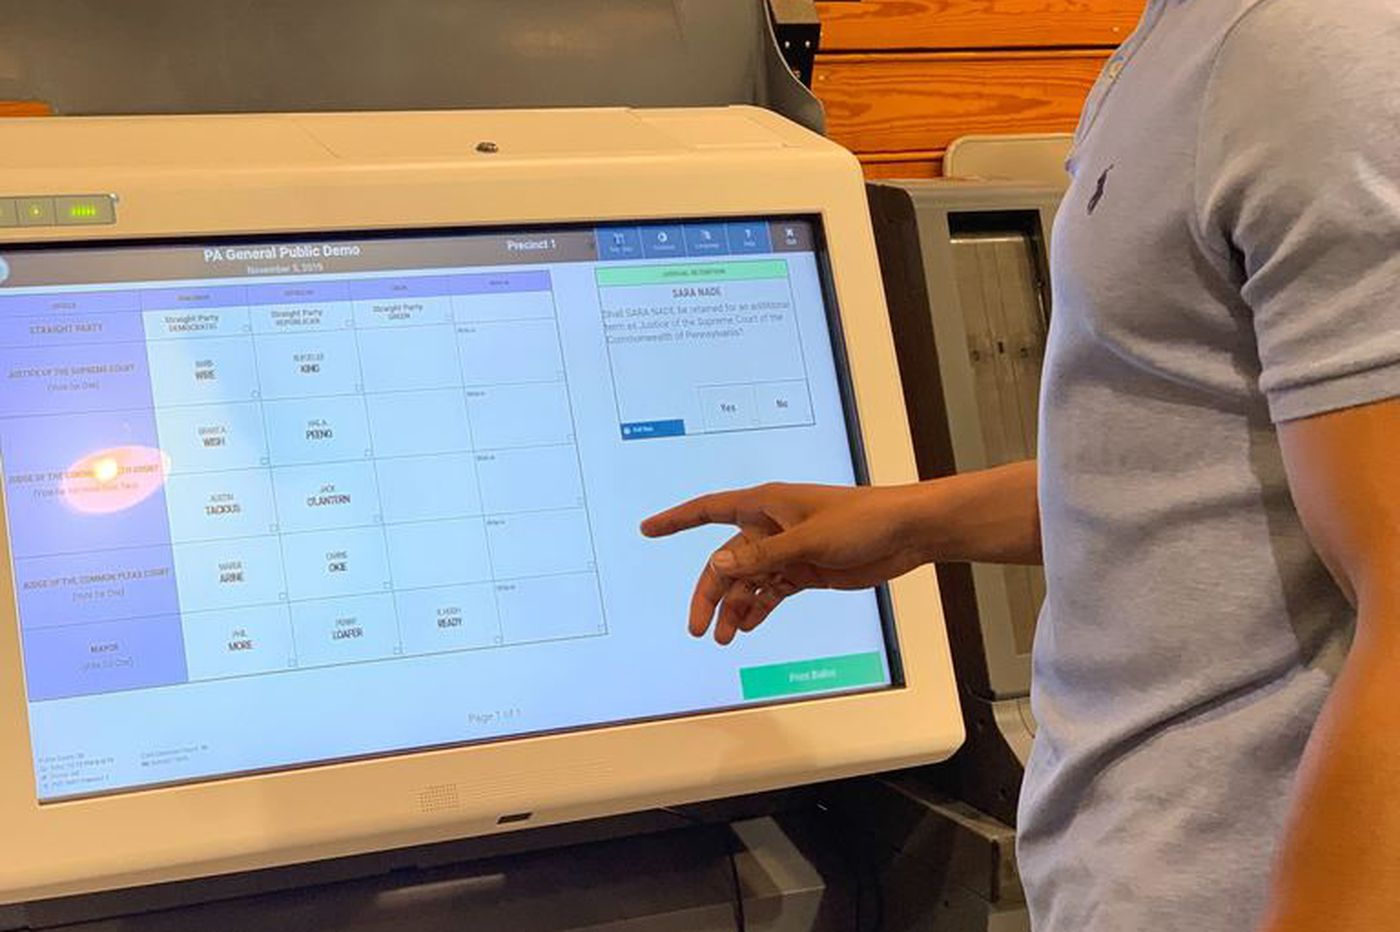 New voting technology is good step for Pennsylvania, but voters need training | Opinion